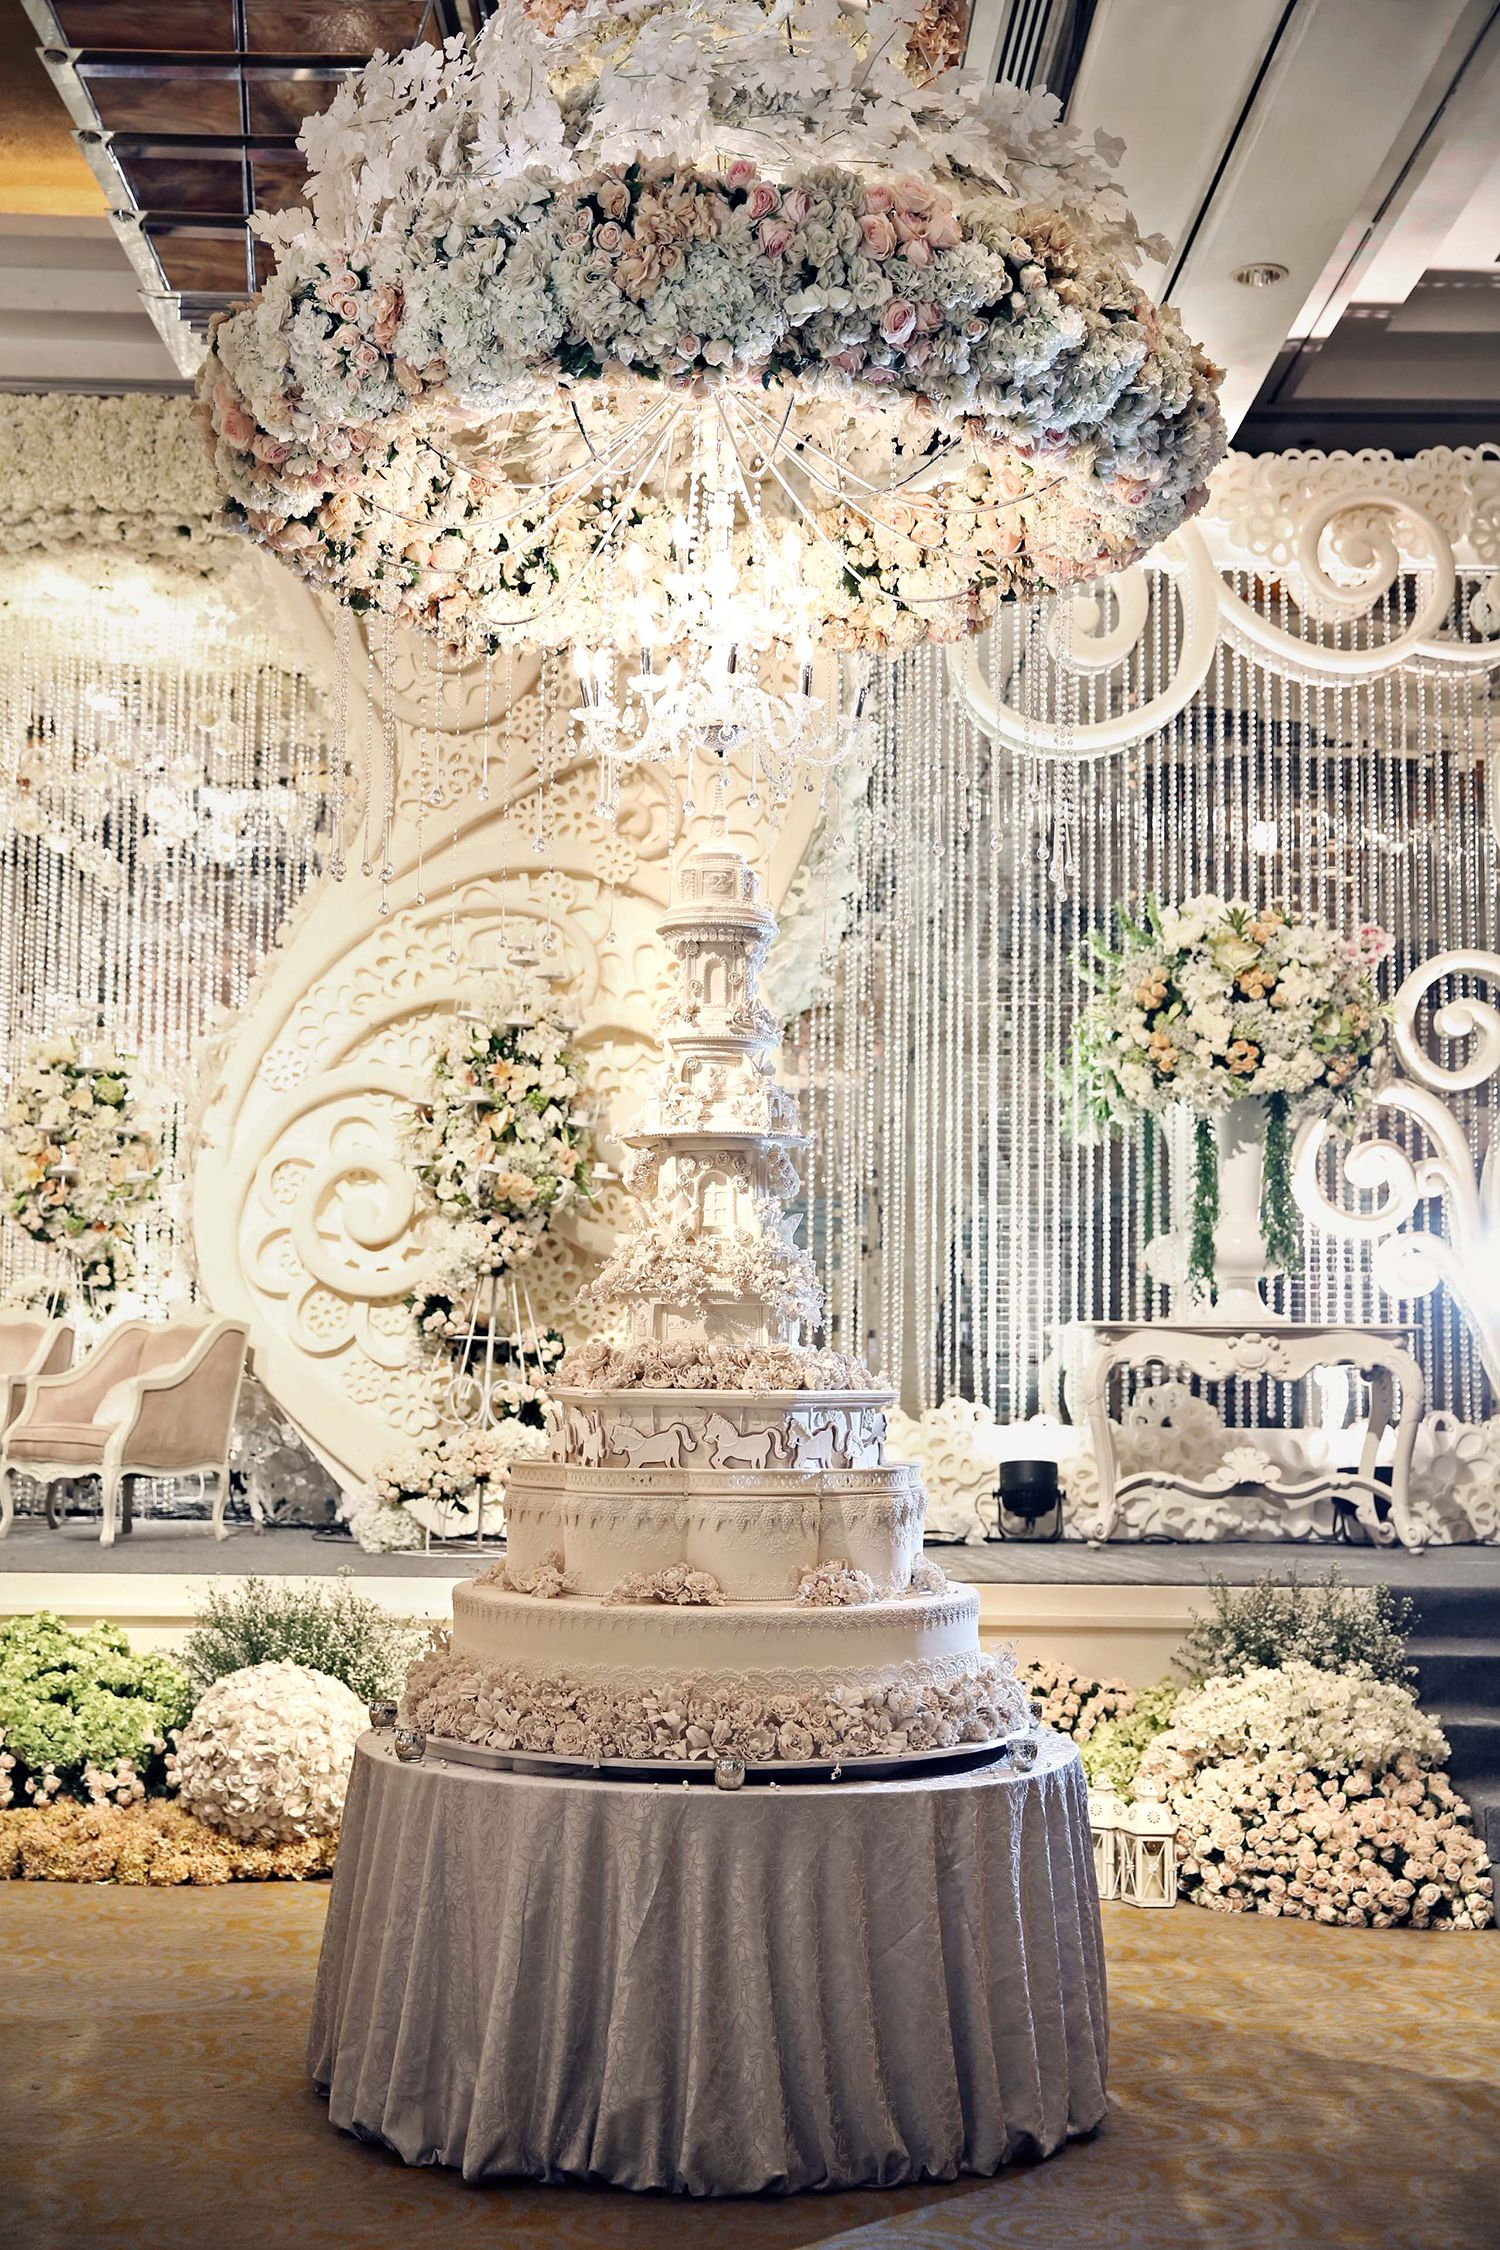 Grandeur wedding decoration in all white inspiring post by grandeur wedding decoration in all white inspiring post by bridestory everyone should read about dreamy fairy tale inspired wedding in jakarta on junglespirit Image collections